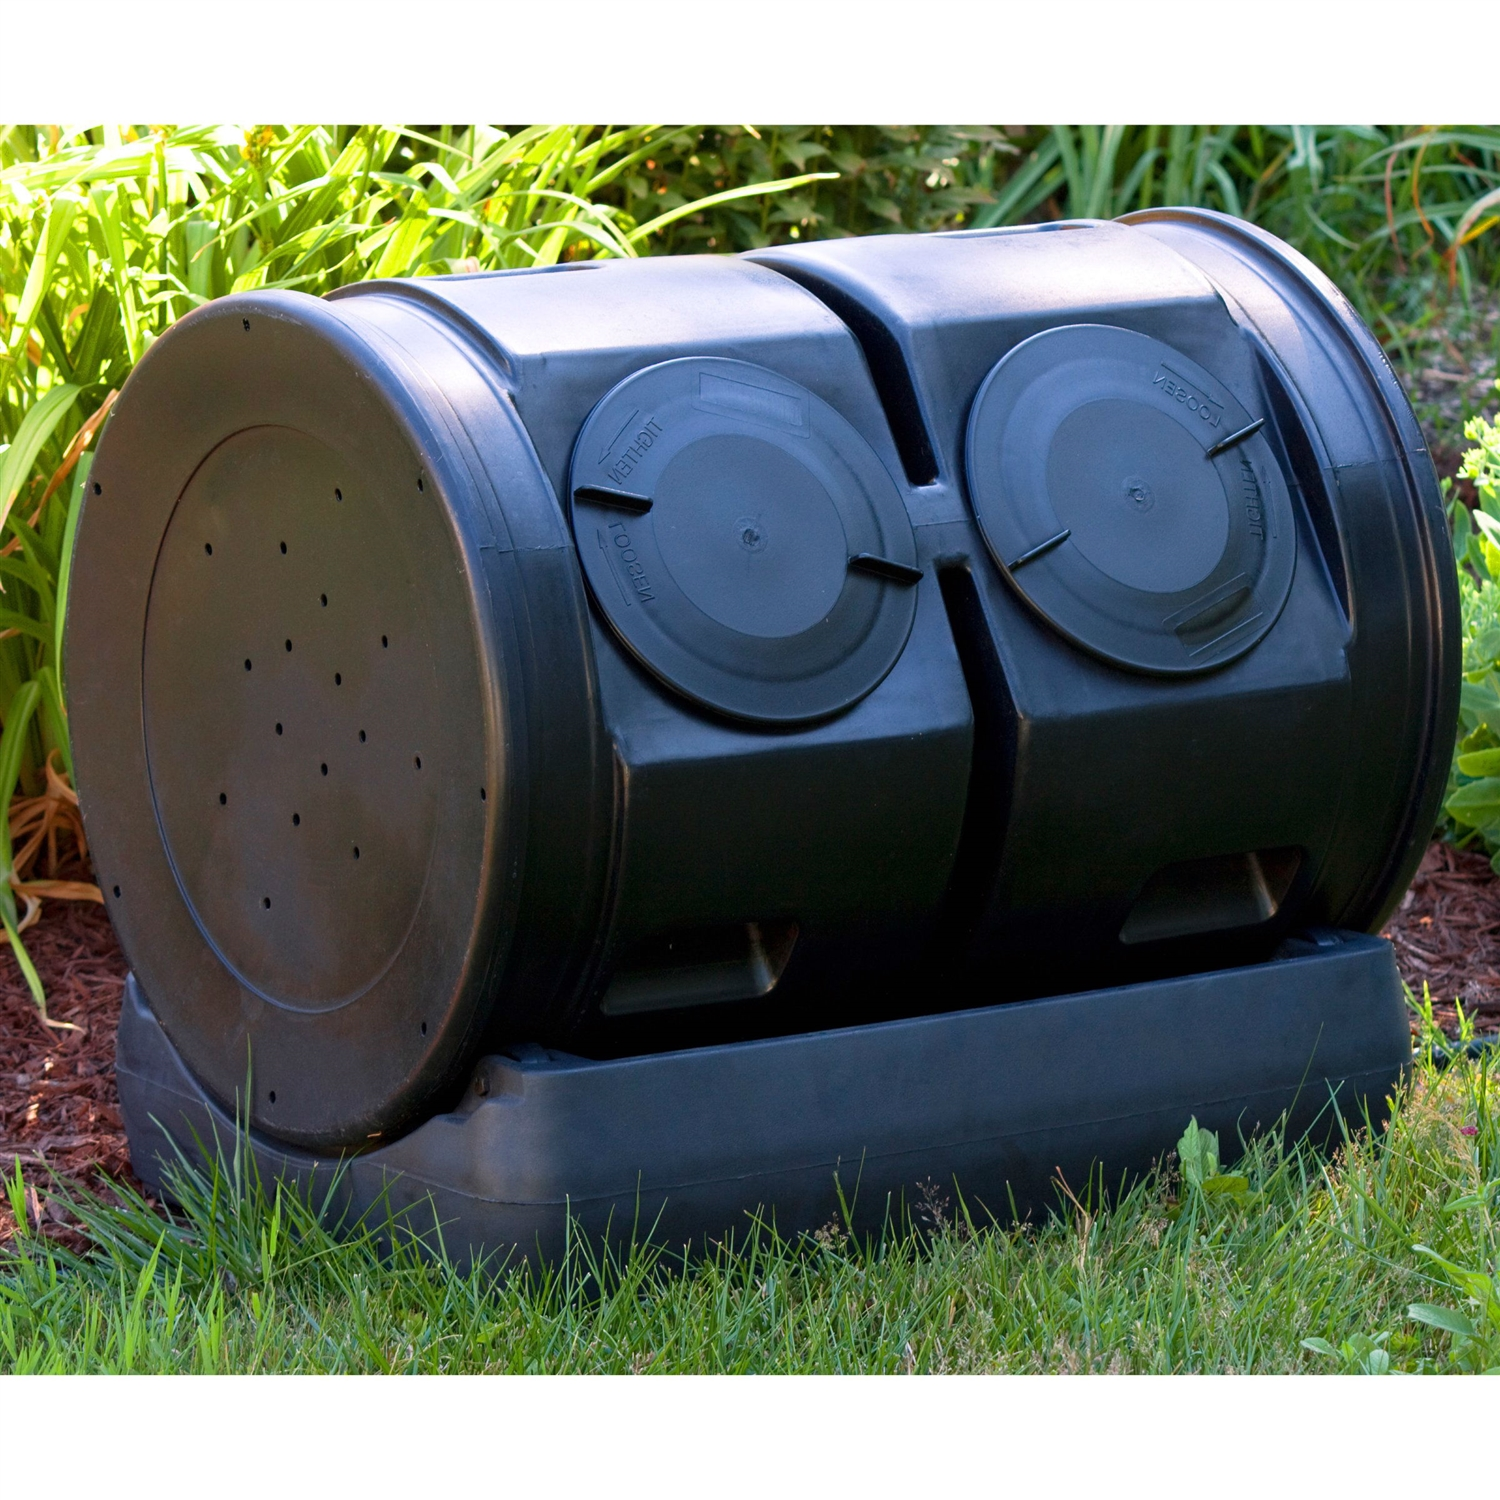 Composting Bin Tumbler With Compost Tea Collector